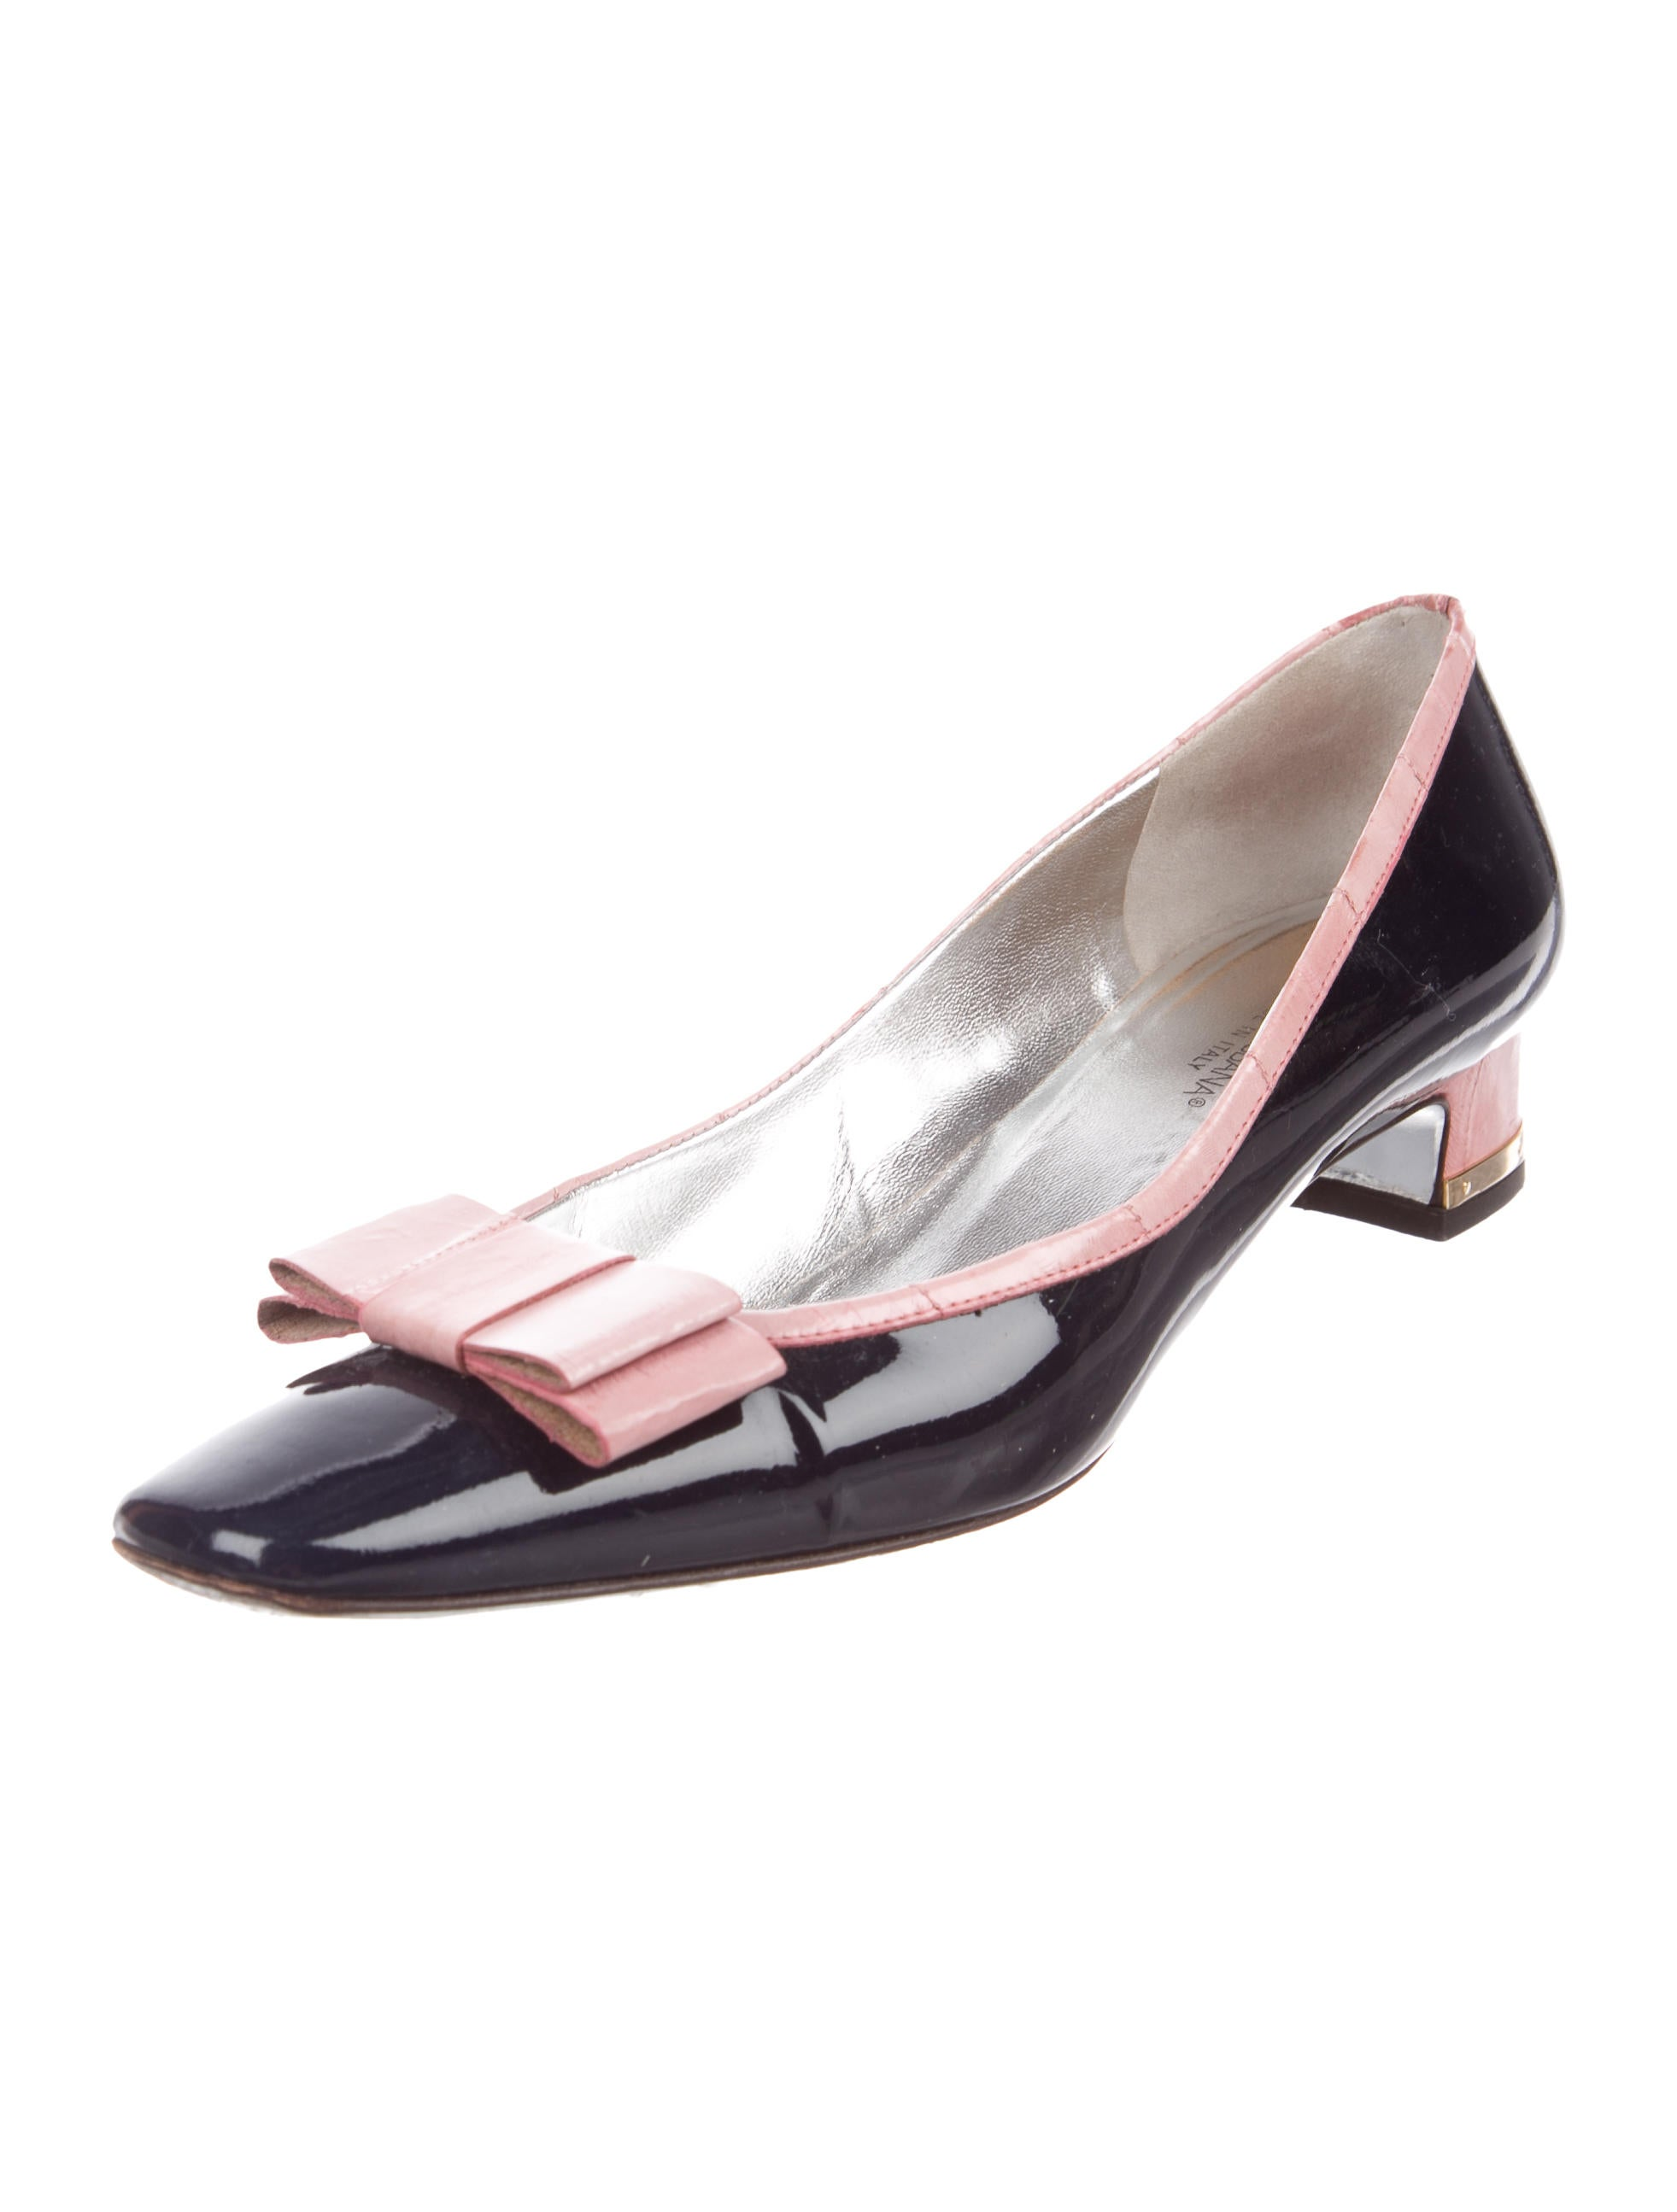 cheap sale 2014 newest cheap price pre order Dolce & Gabbana Eelskin-Accented Patent Pumps outlet top quality buy cheap original discount with mastercard rZlRNU30gh